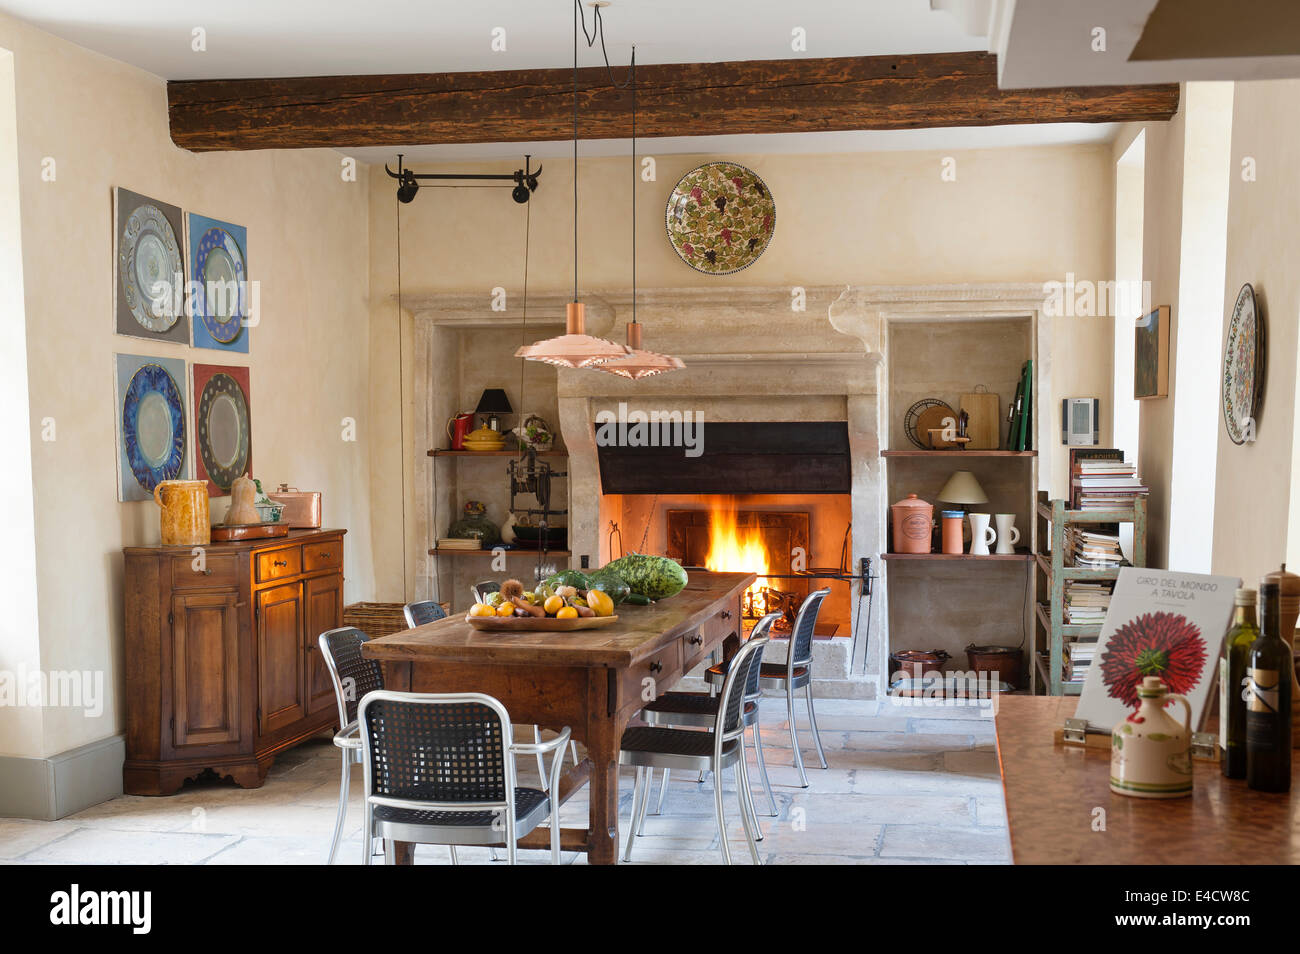 Provencal Kitchen With Large Stone Fireplace And Wooden Dining Table The Copper Pendant Lights Are An Arne Jacobsen Design